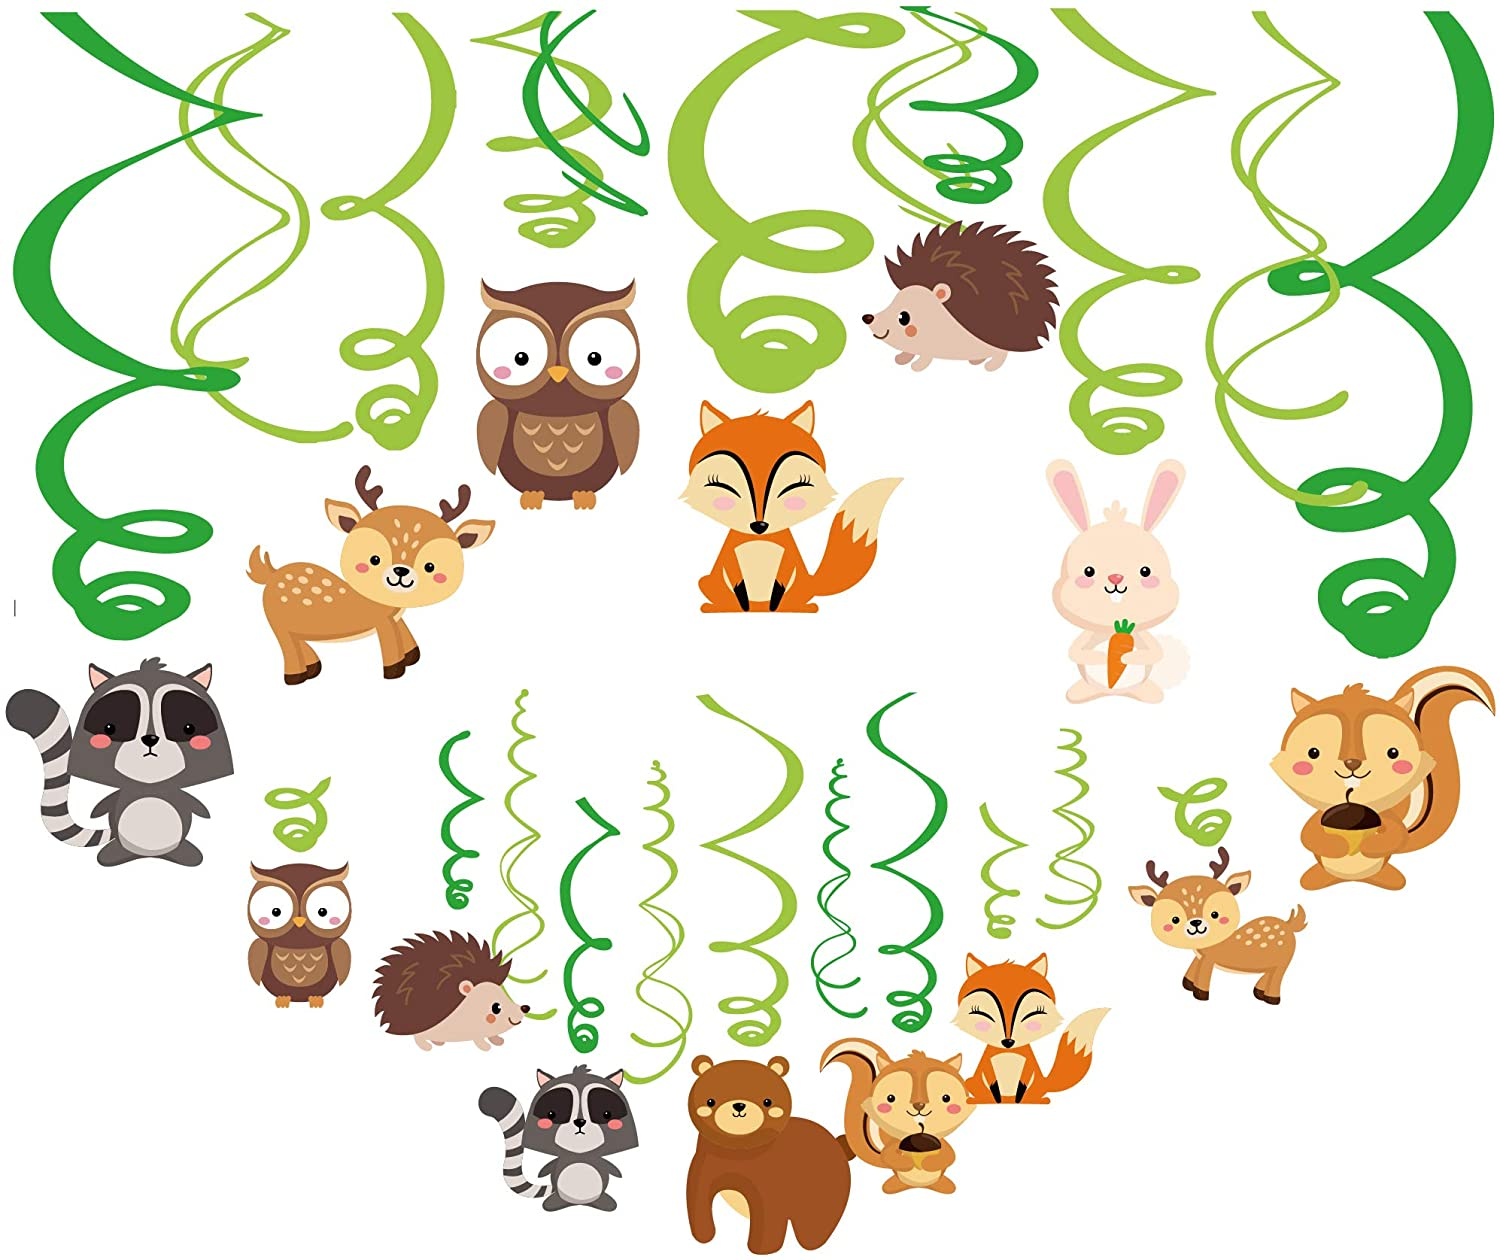 Anor Wishlife 30Ct Woodland Animals Decorations,Forest Animal Decorations,Fox Hanging Swirl Ceiling Streamers Decorations for Girls,Boys,Kids Home,Classroom,Baby Shower,Office